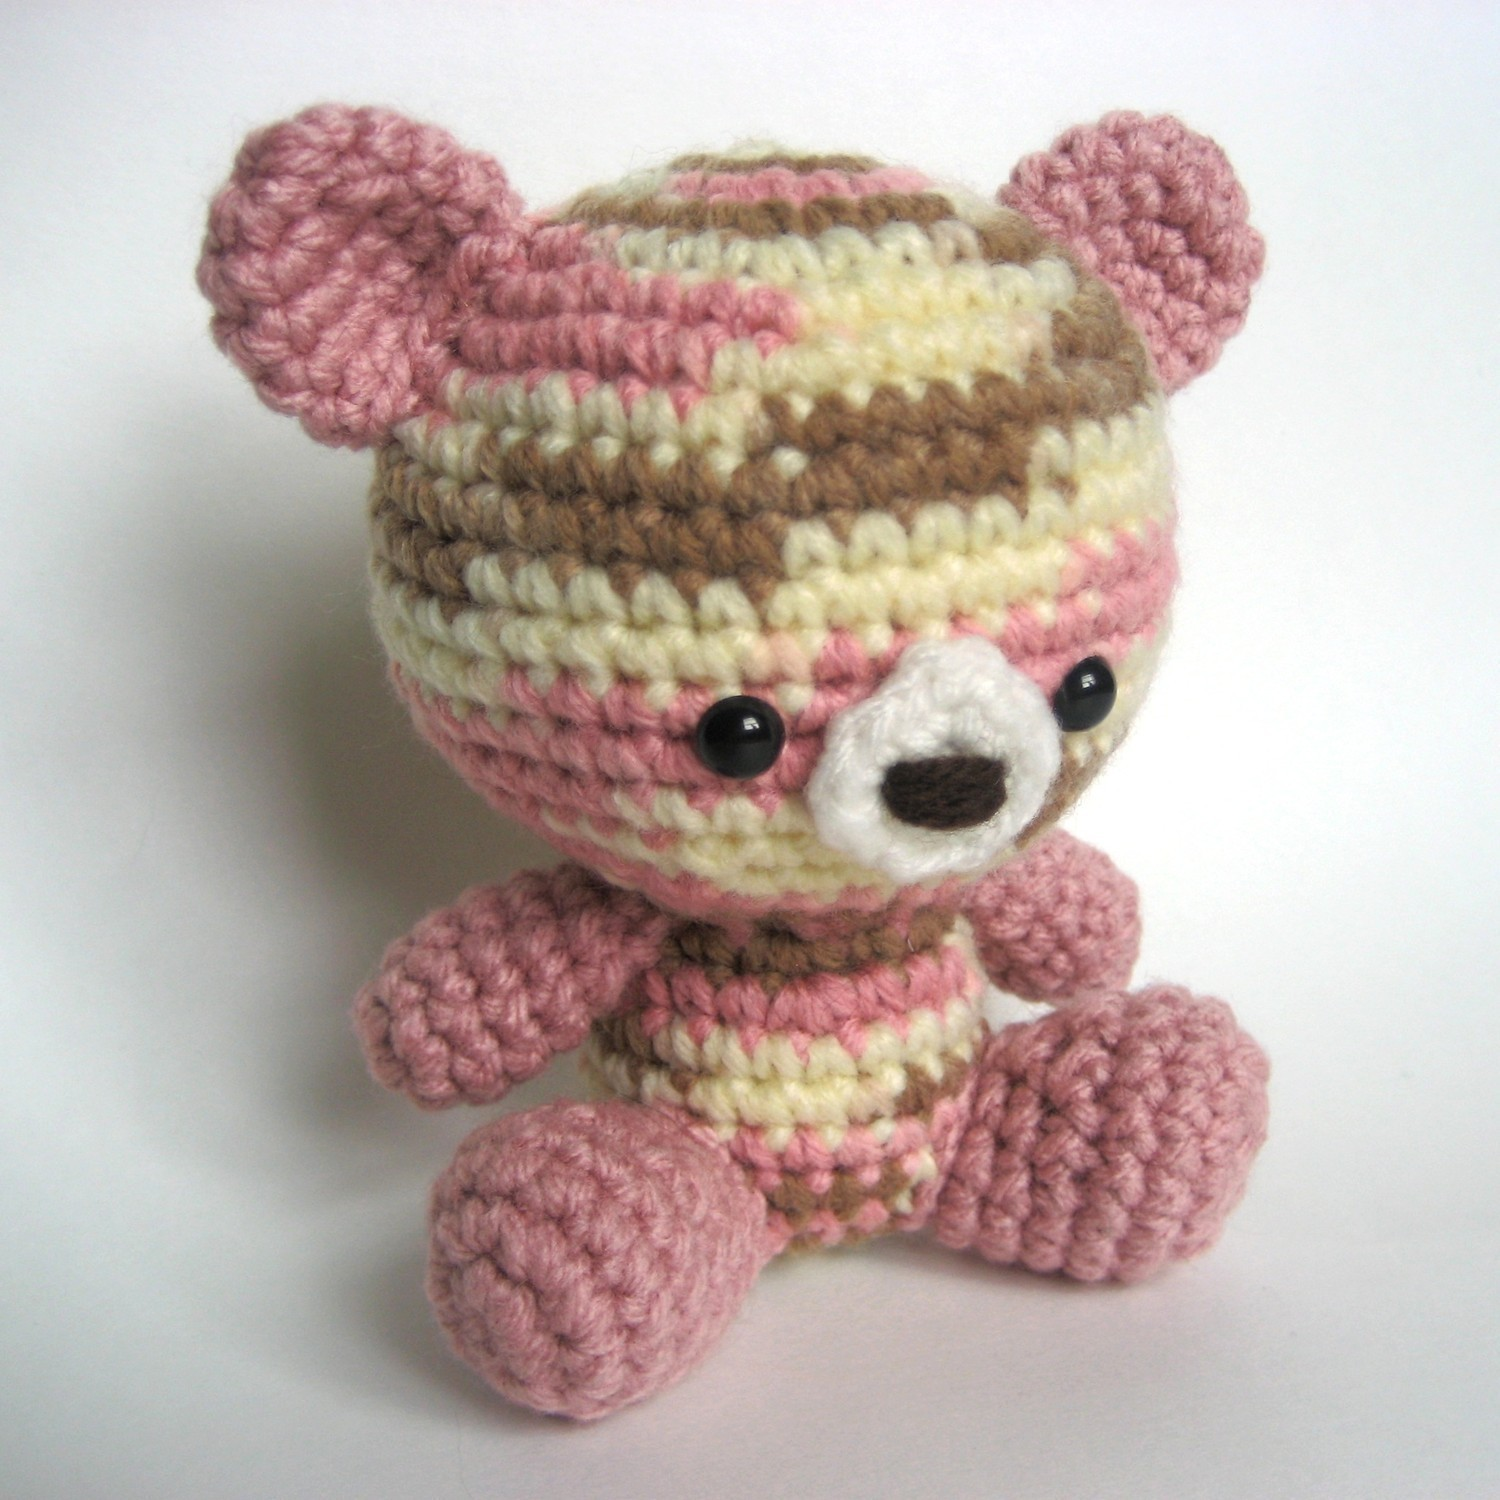 15 Crochet Teddy Bear Patterns | 1500x1500